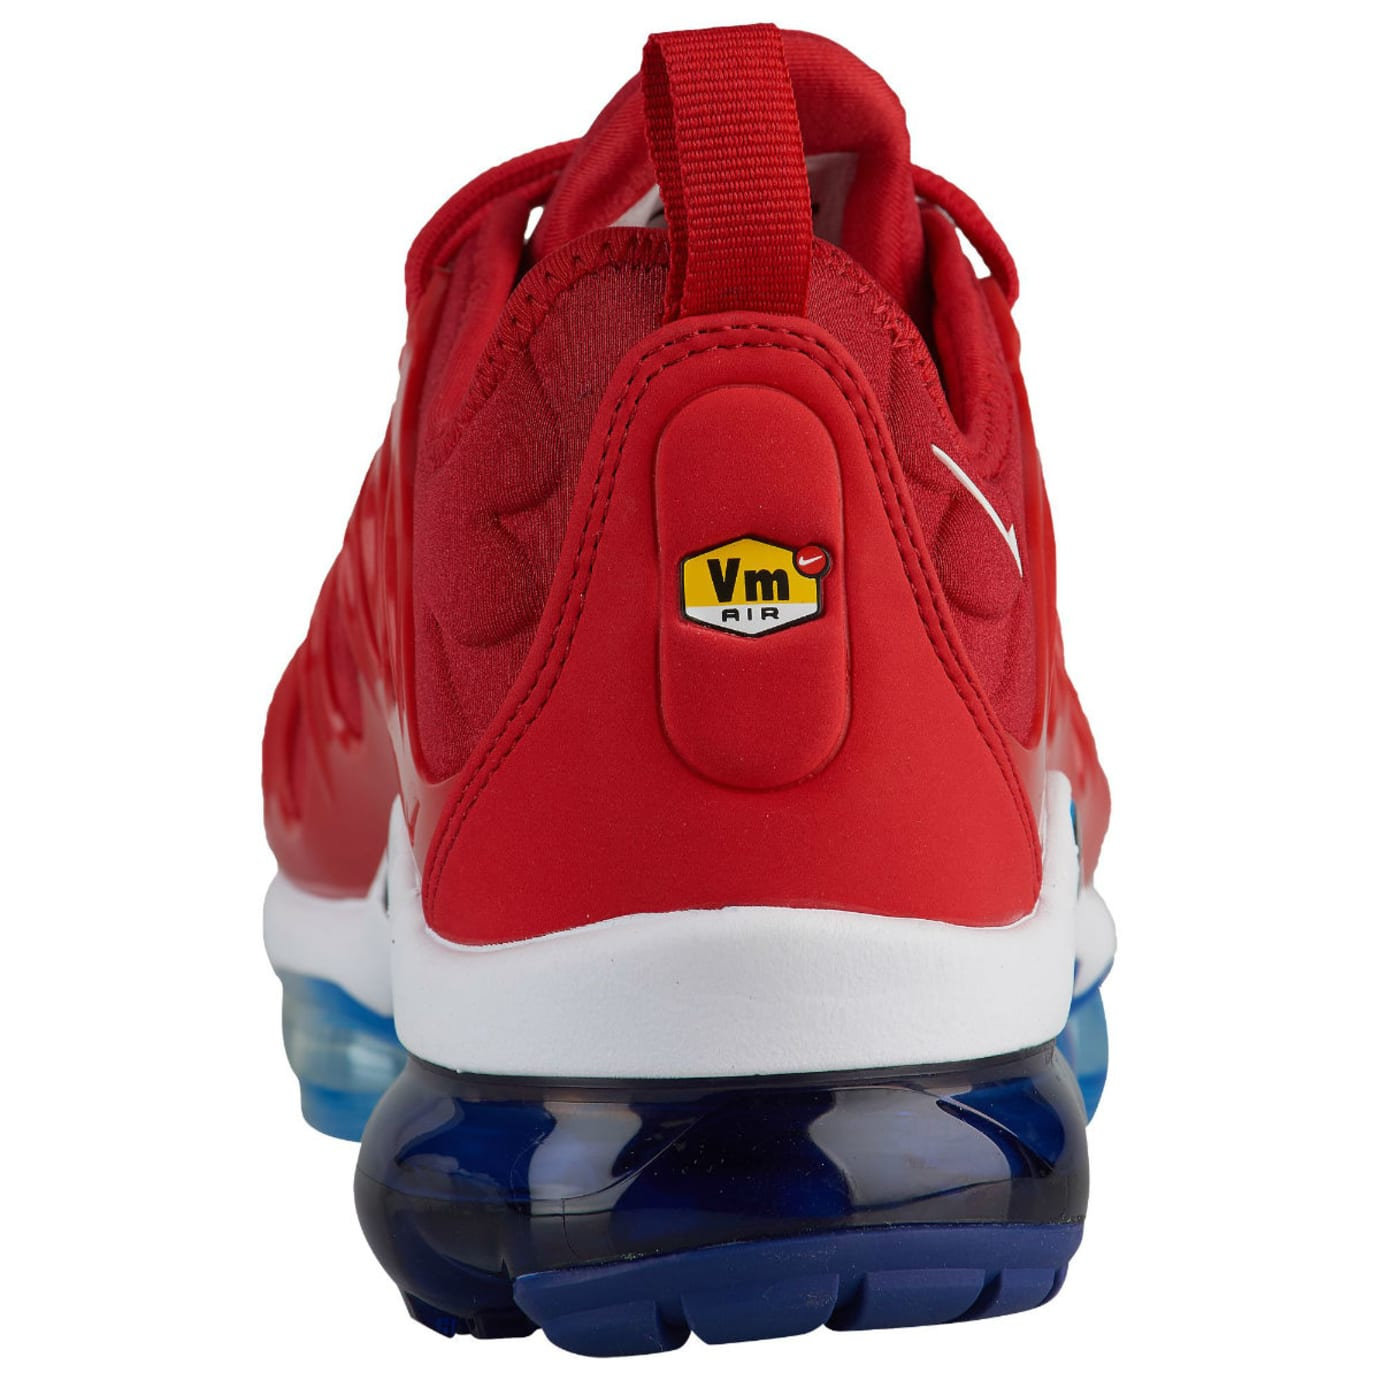 ef6367c62f6a4 Image via Foot Locker Nike Air VaporMax Plus USA Red White Blue Release  Date 924453-601 Heel